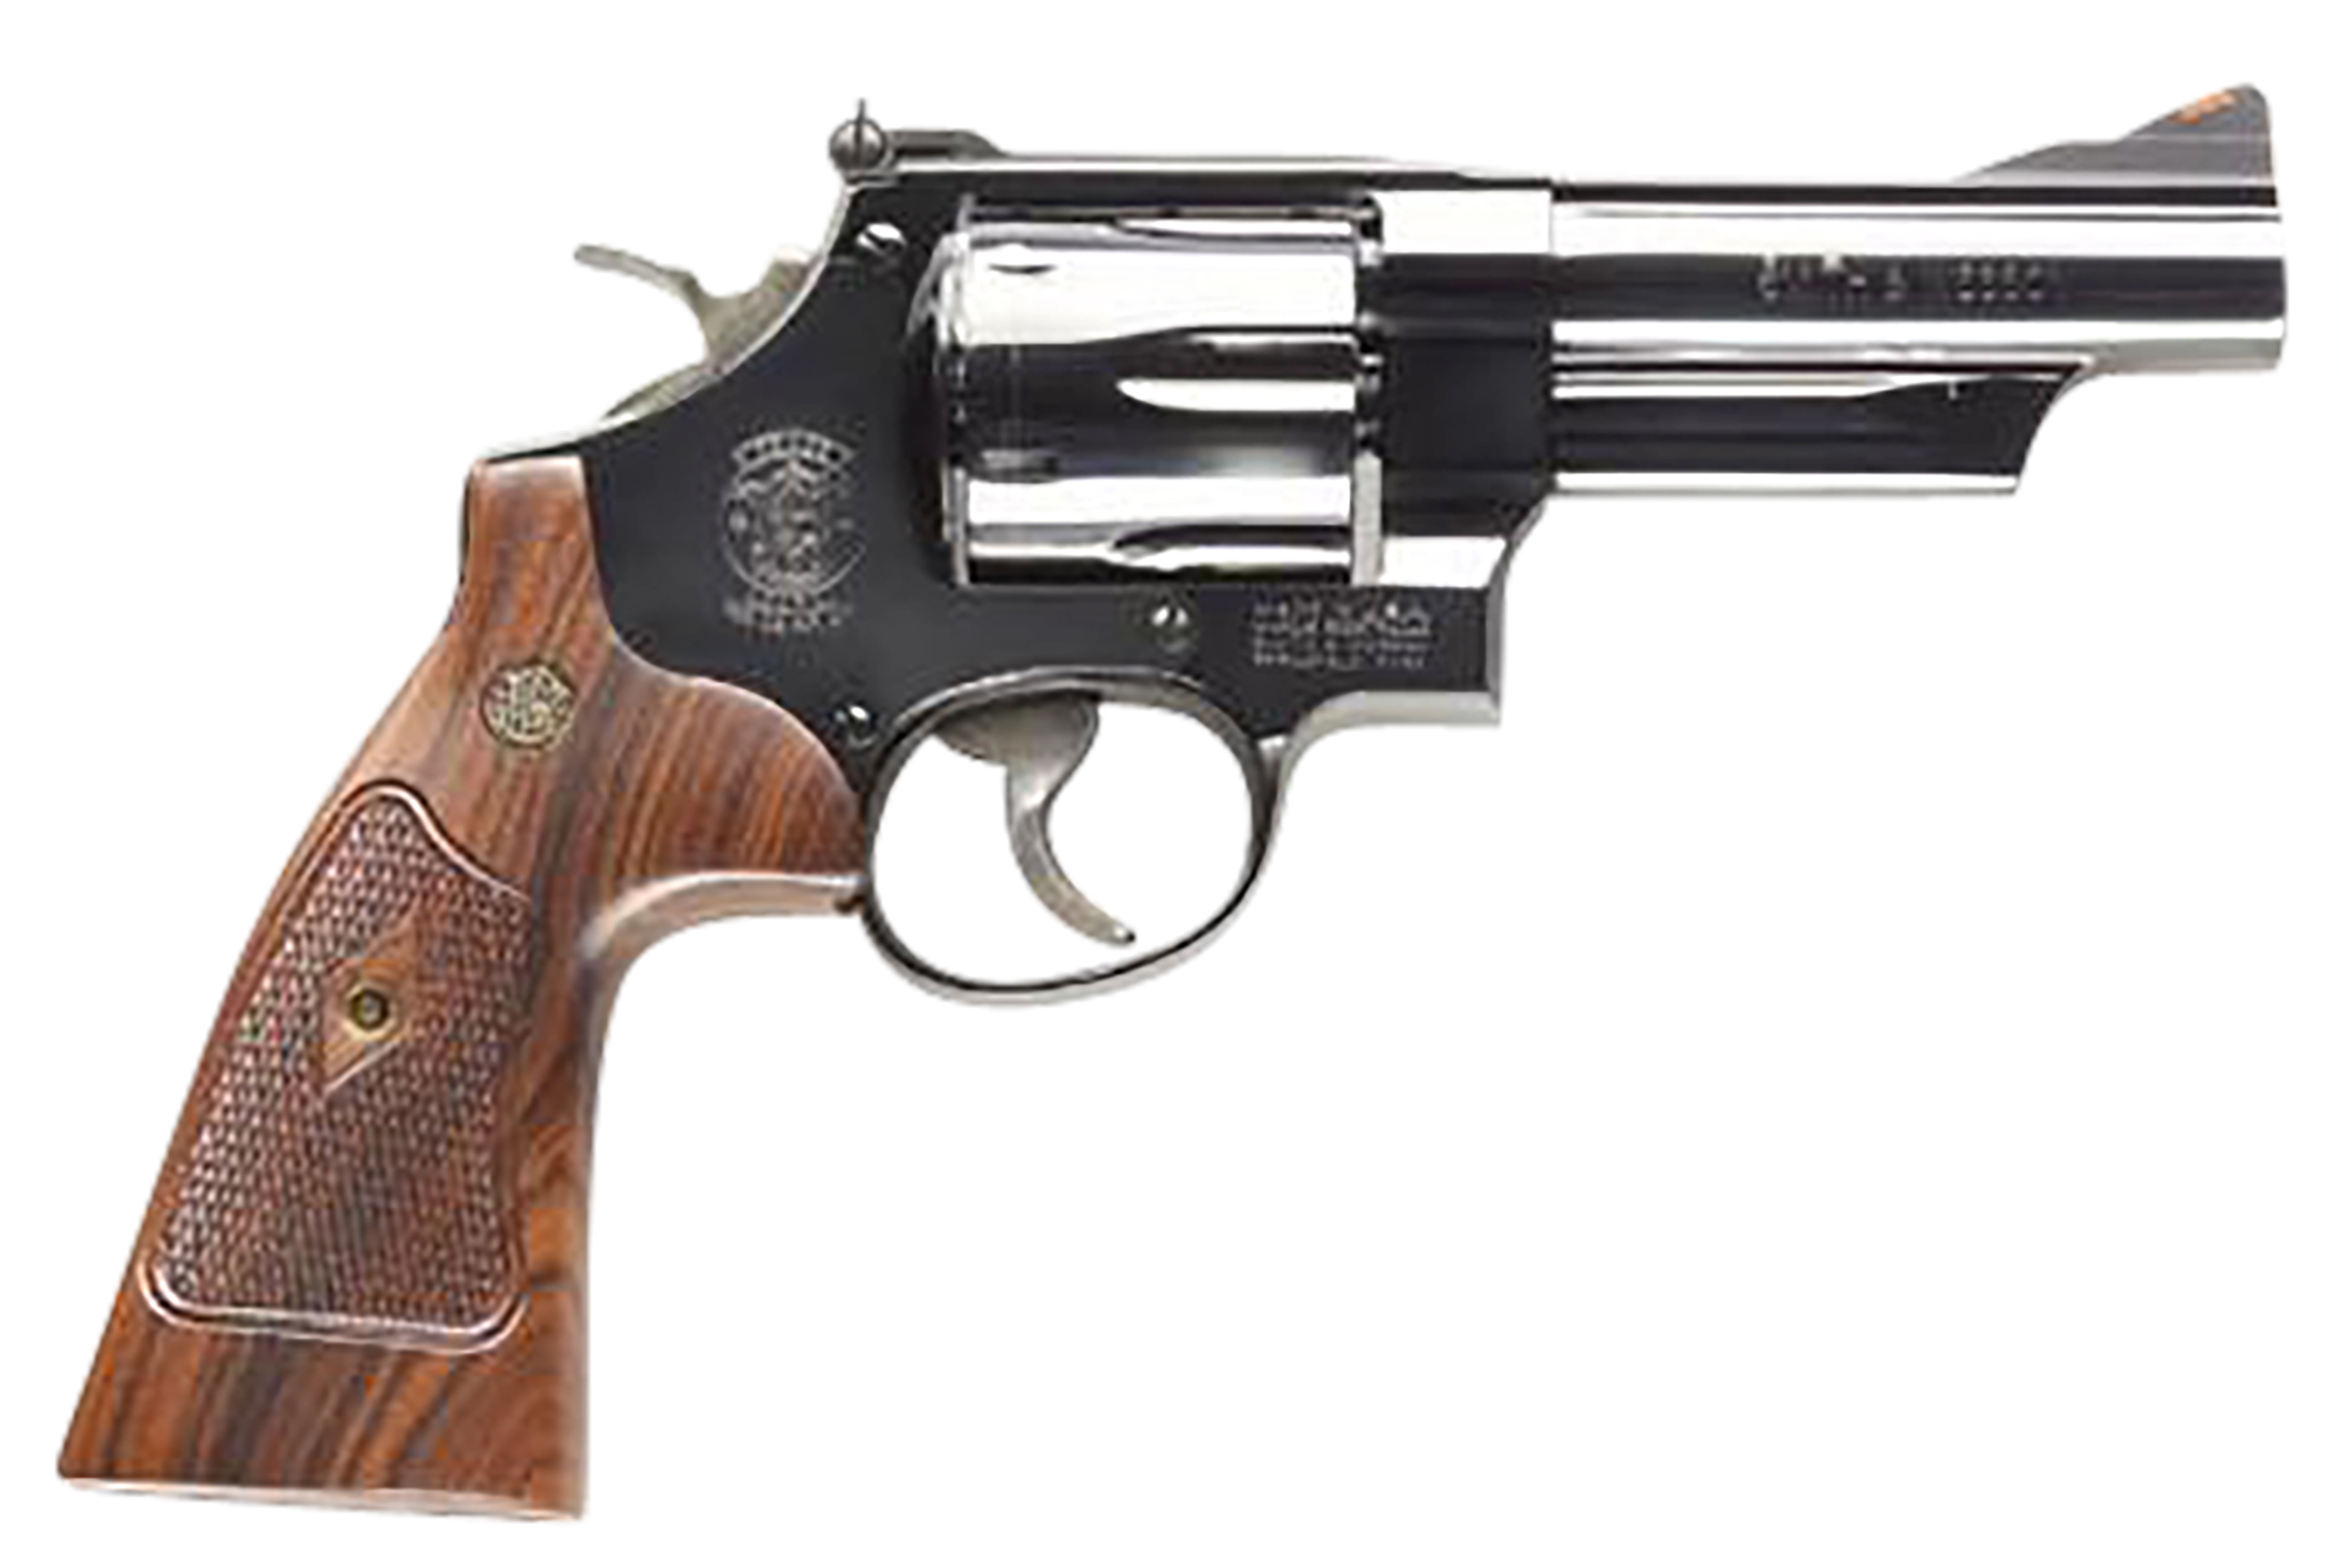 wesson singles The first smith & wesson single shots were built with a six-inch barrel and in 38 caliber afterward they were made in 32 caliber and later in 22 caliber.